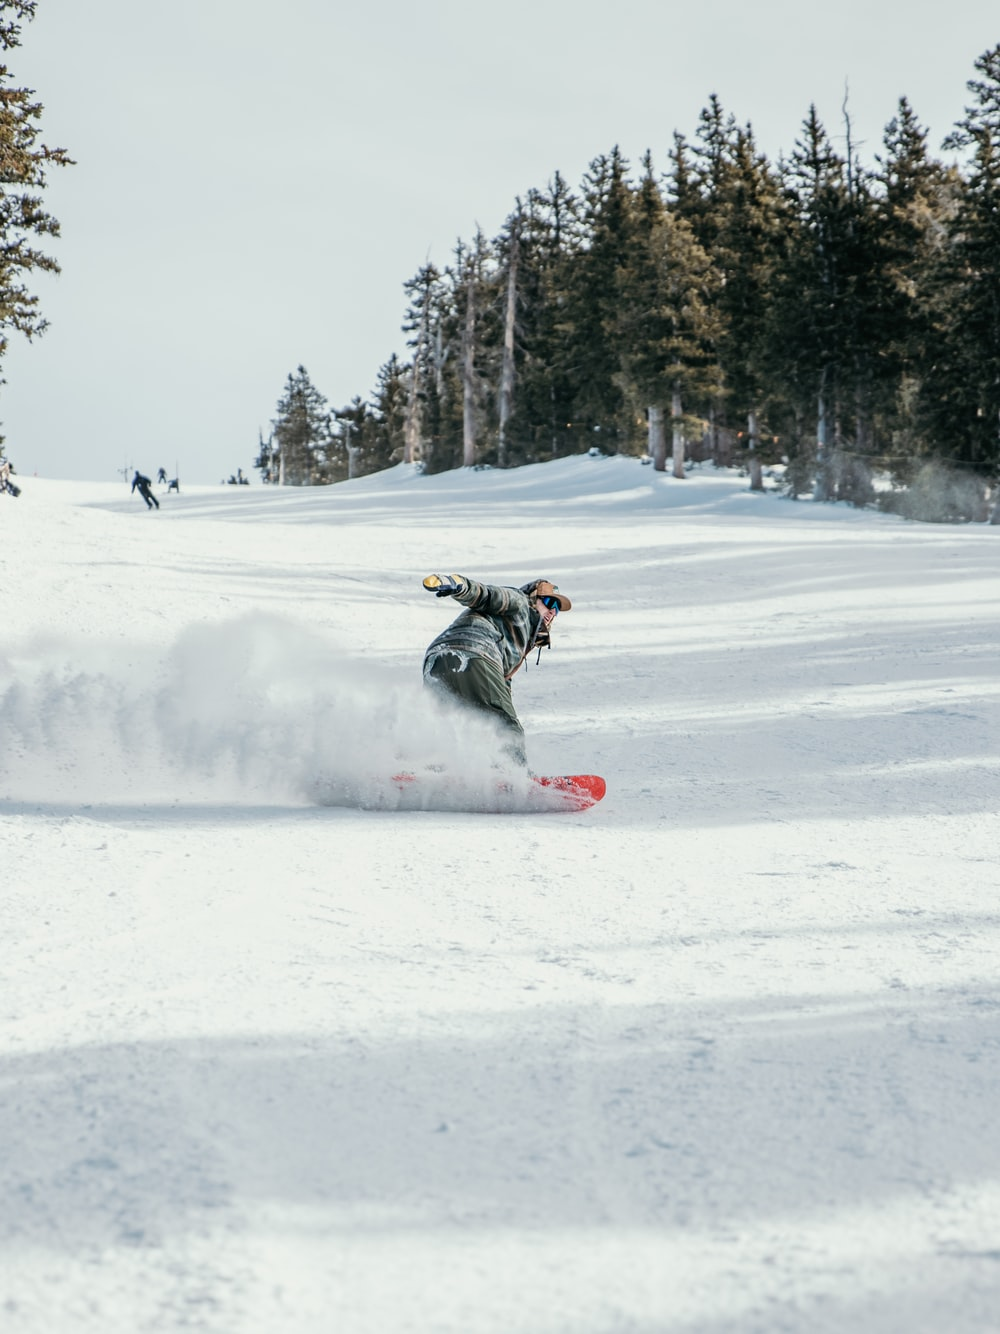 person in black jacket riding on snowboard during daytime